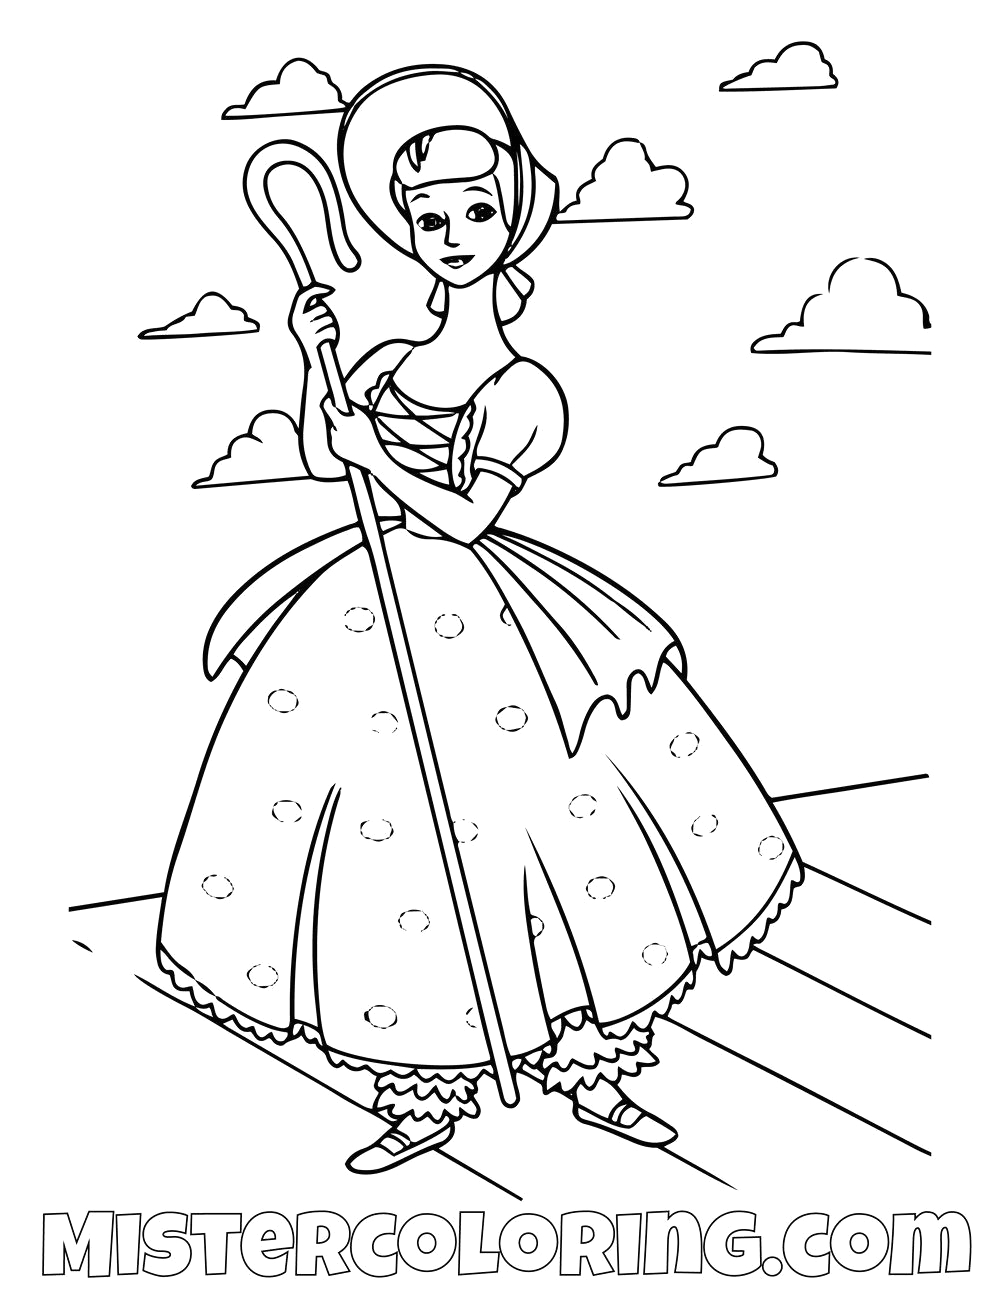 disney bo peep coloring pages